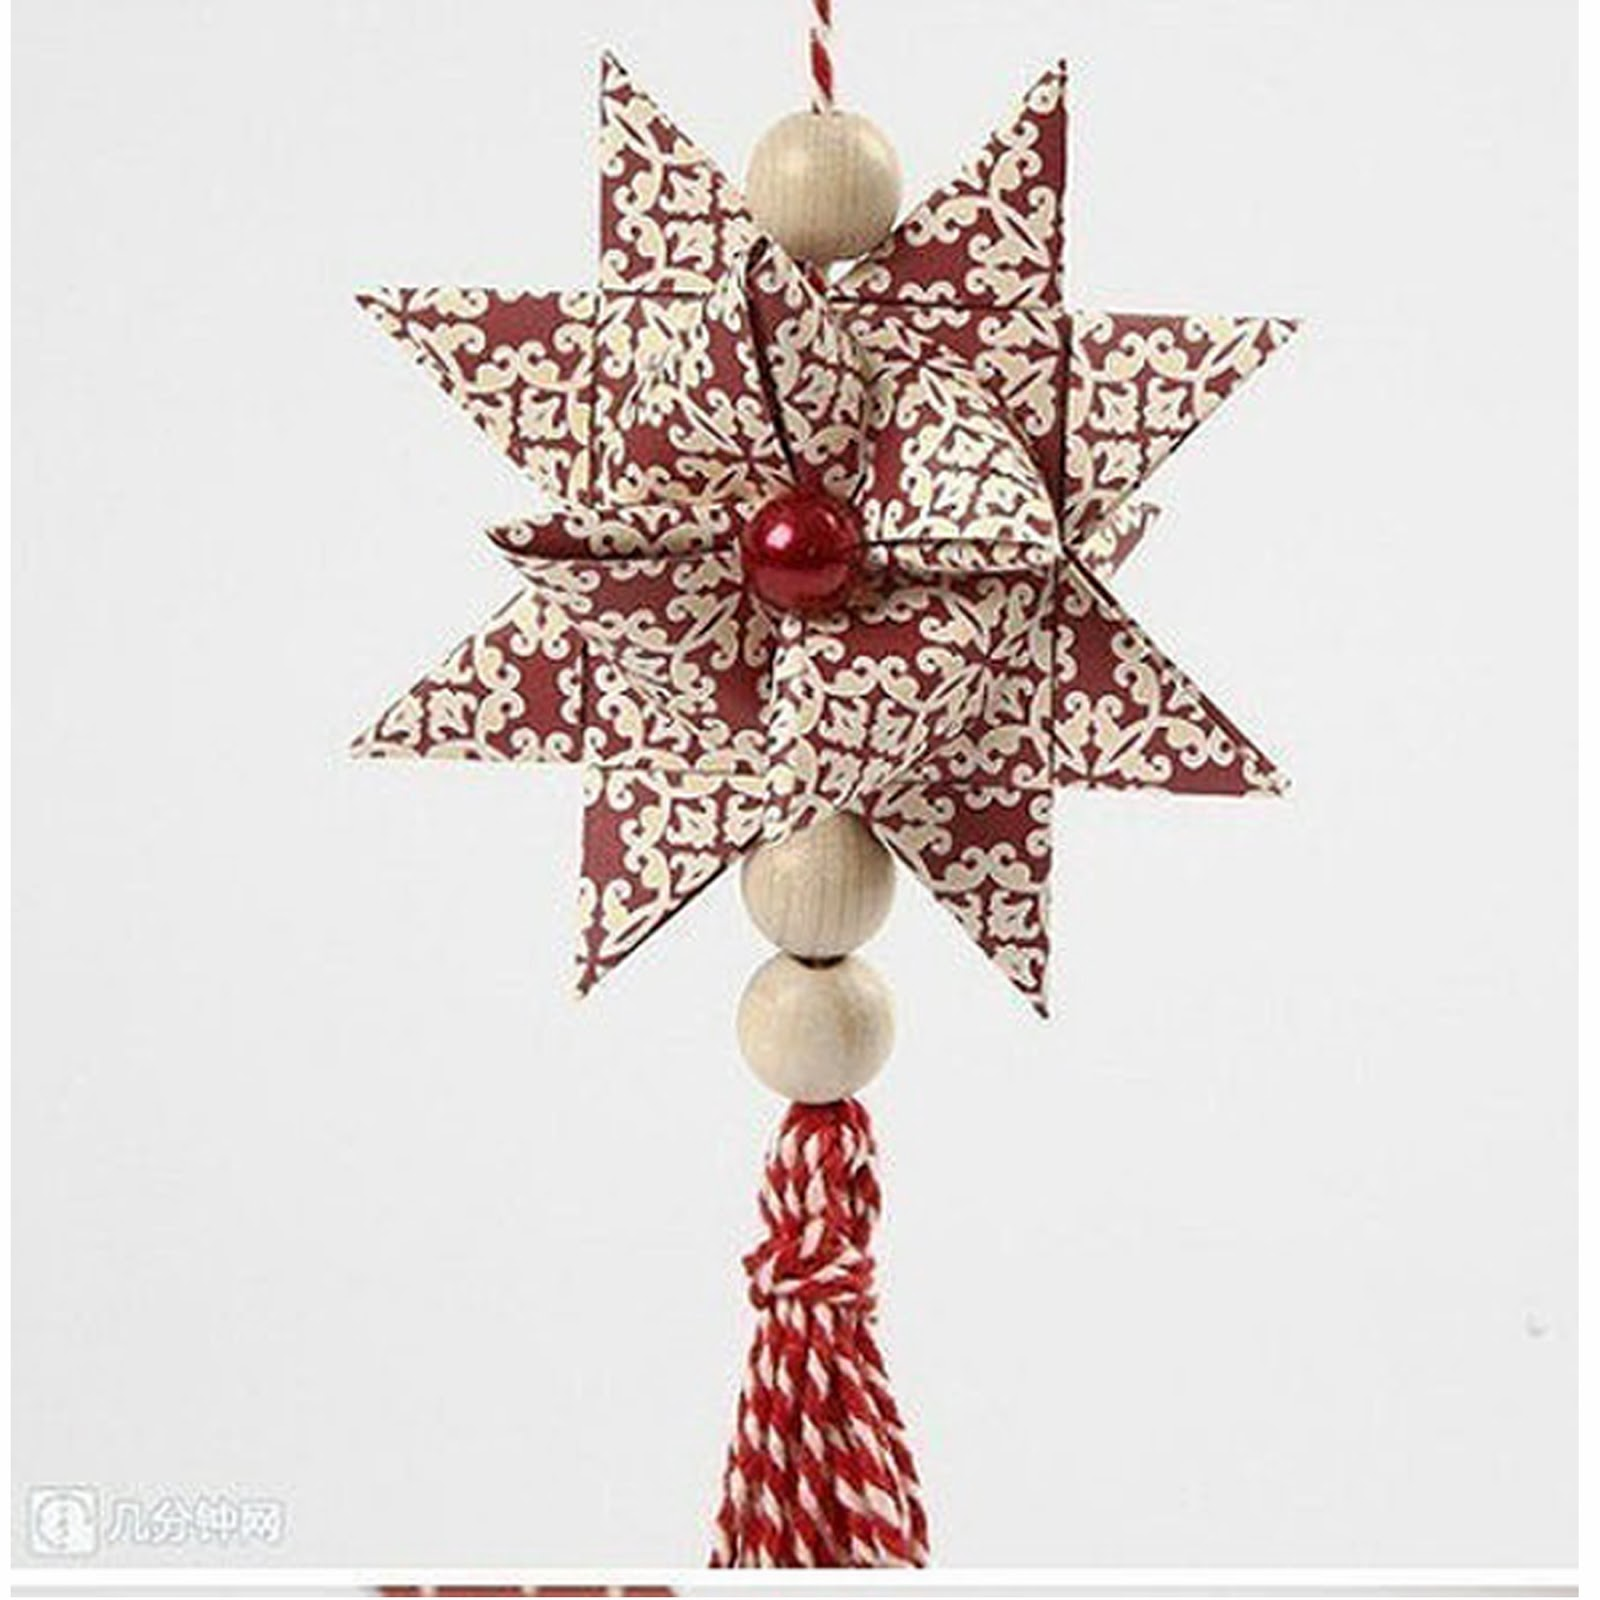 Star Festivel: 3D Star Origami | Paper Origami Guide - photo#35